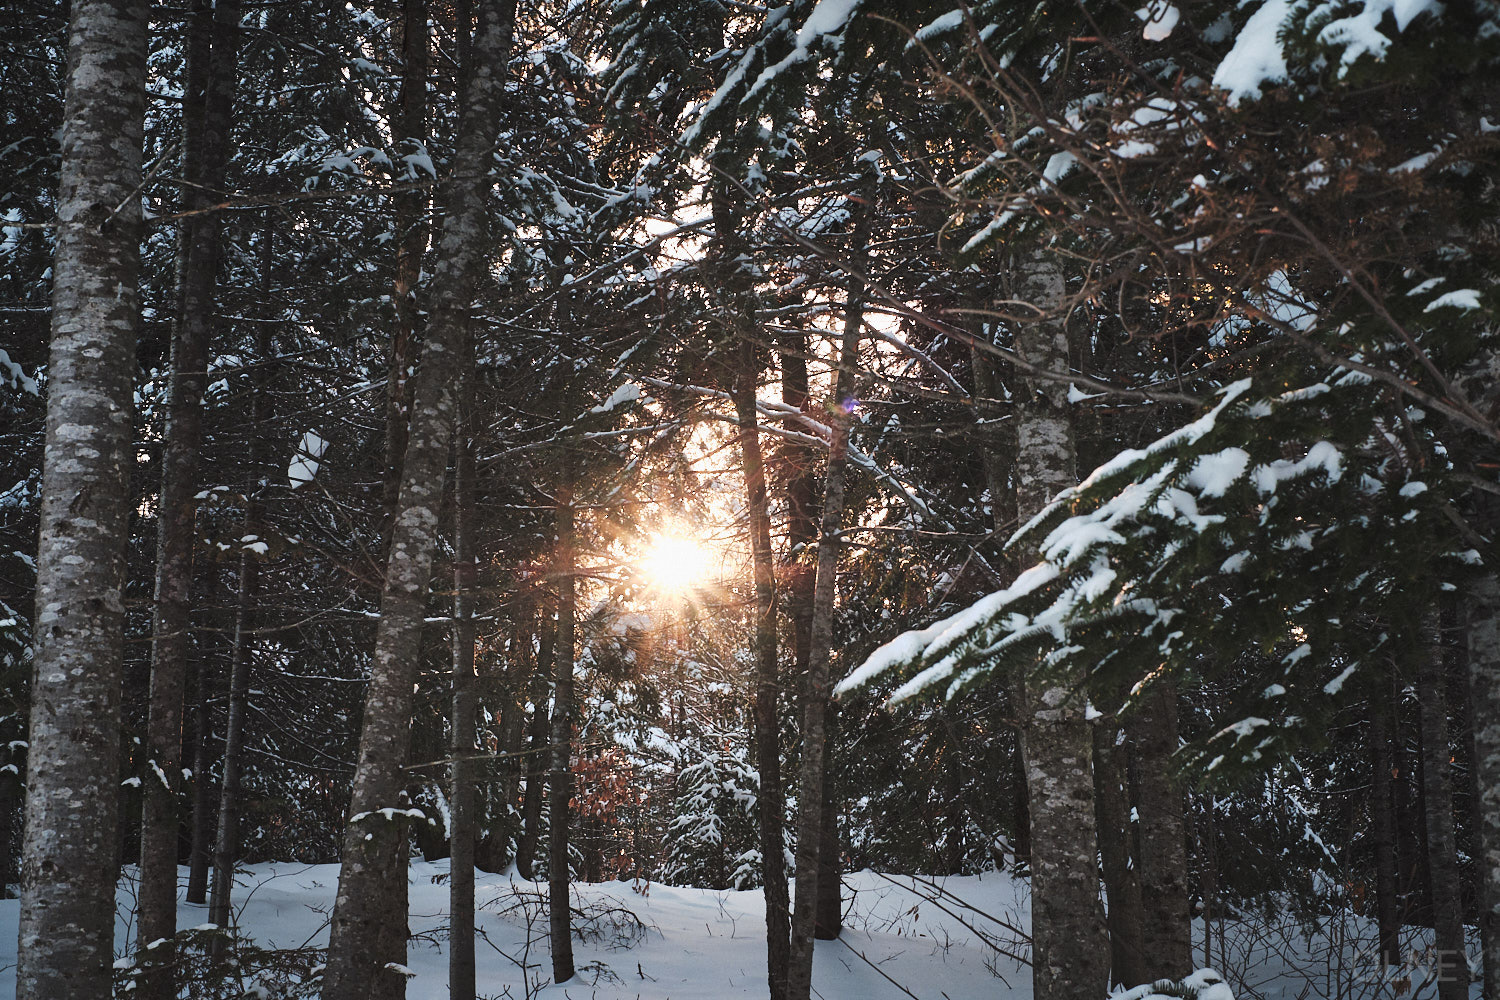 sun through trees in winter